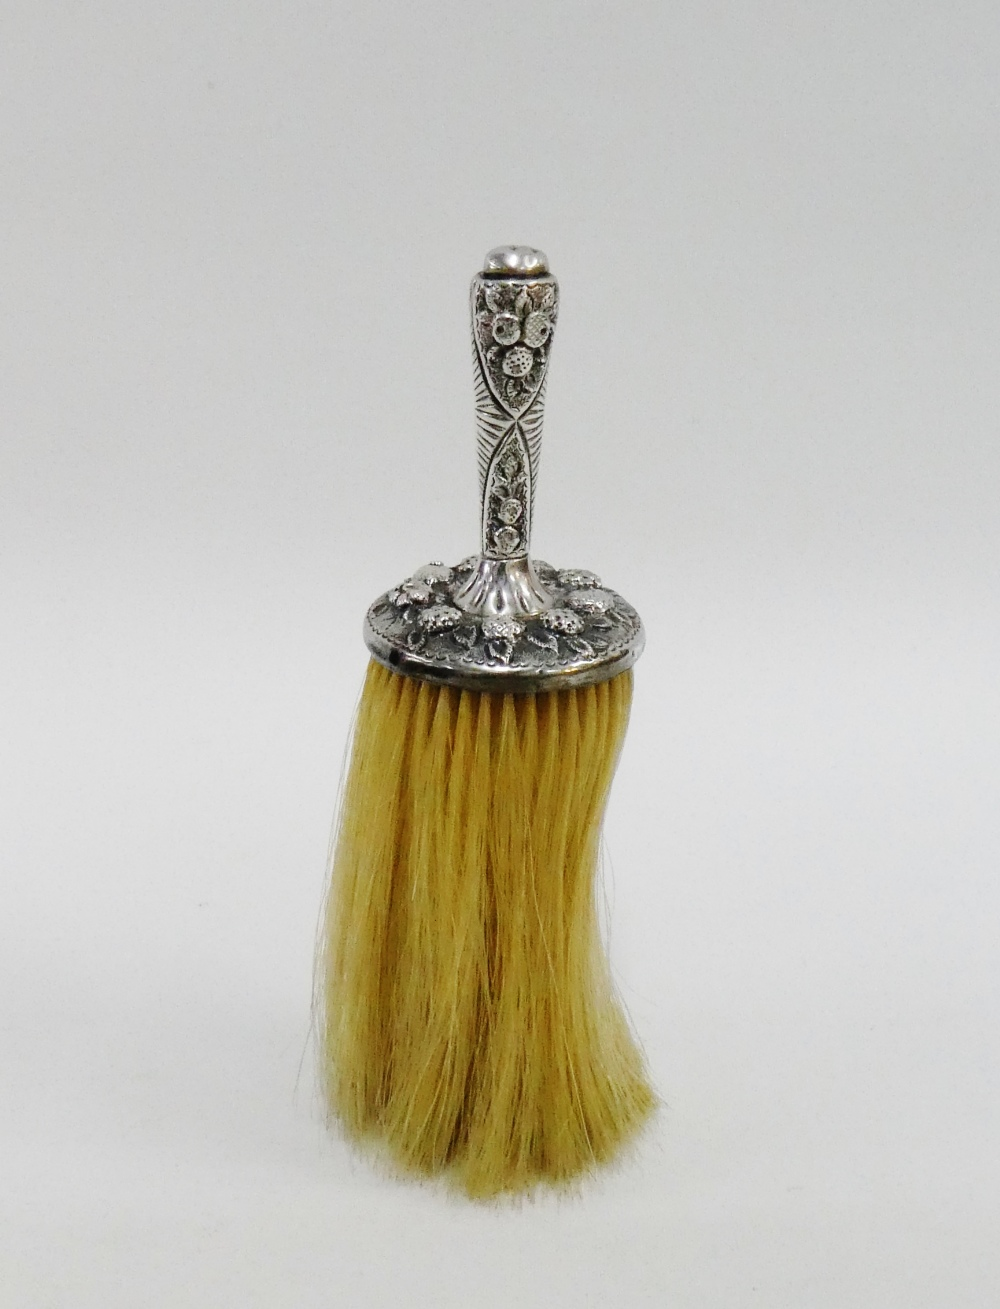 Lot 8 - Victorian silver handled crumb brush, retailed by Thornhill of Bond Street, London 1887, 20cm long